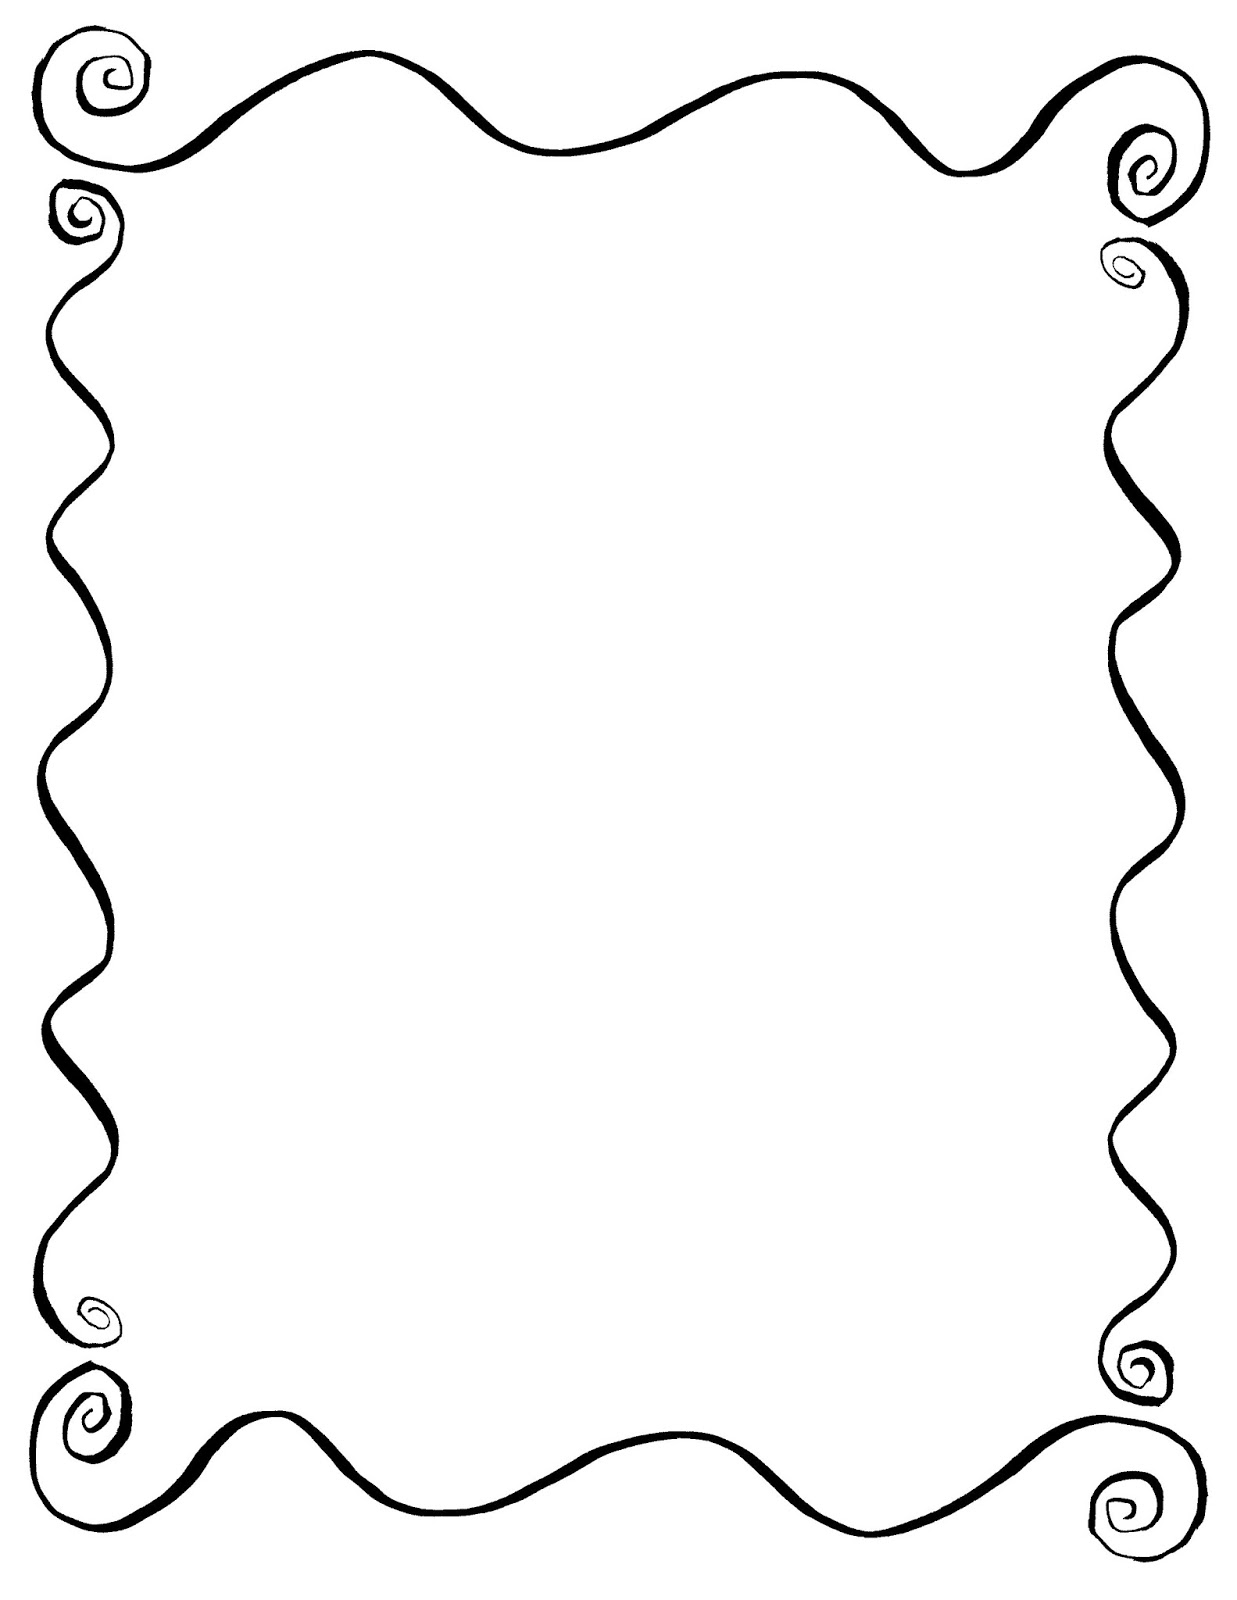 Digital Stamp Design: Hand Drawn Decorative Frame Digital Wavy Swirl ...